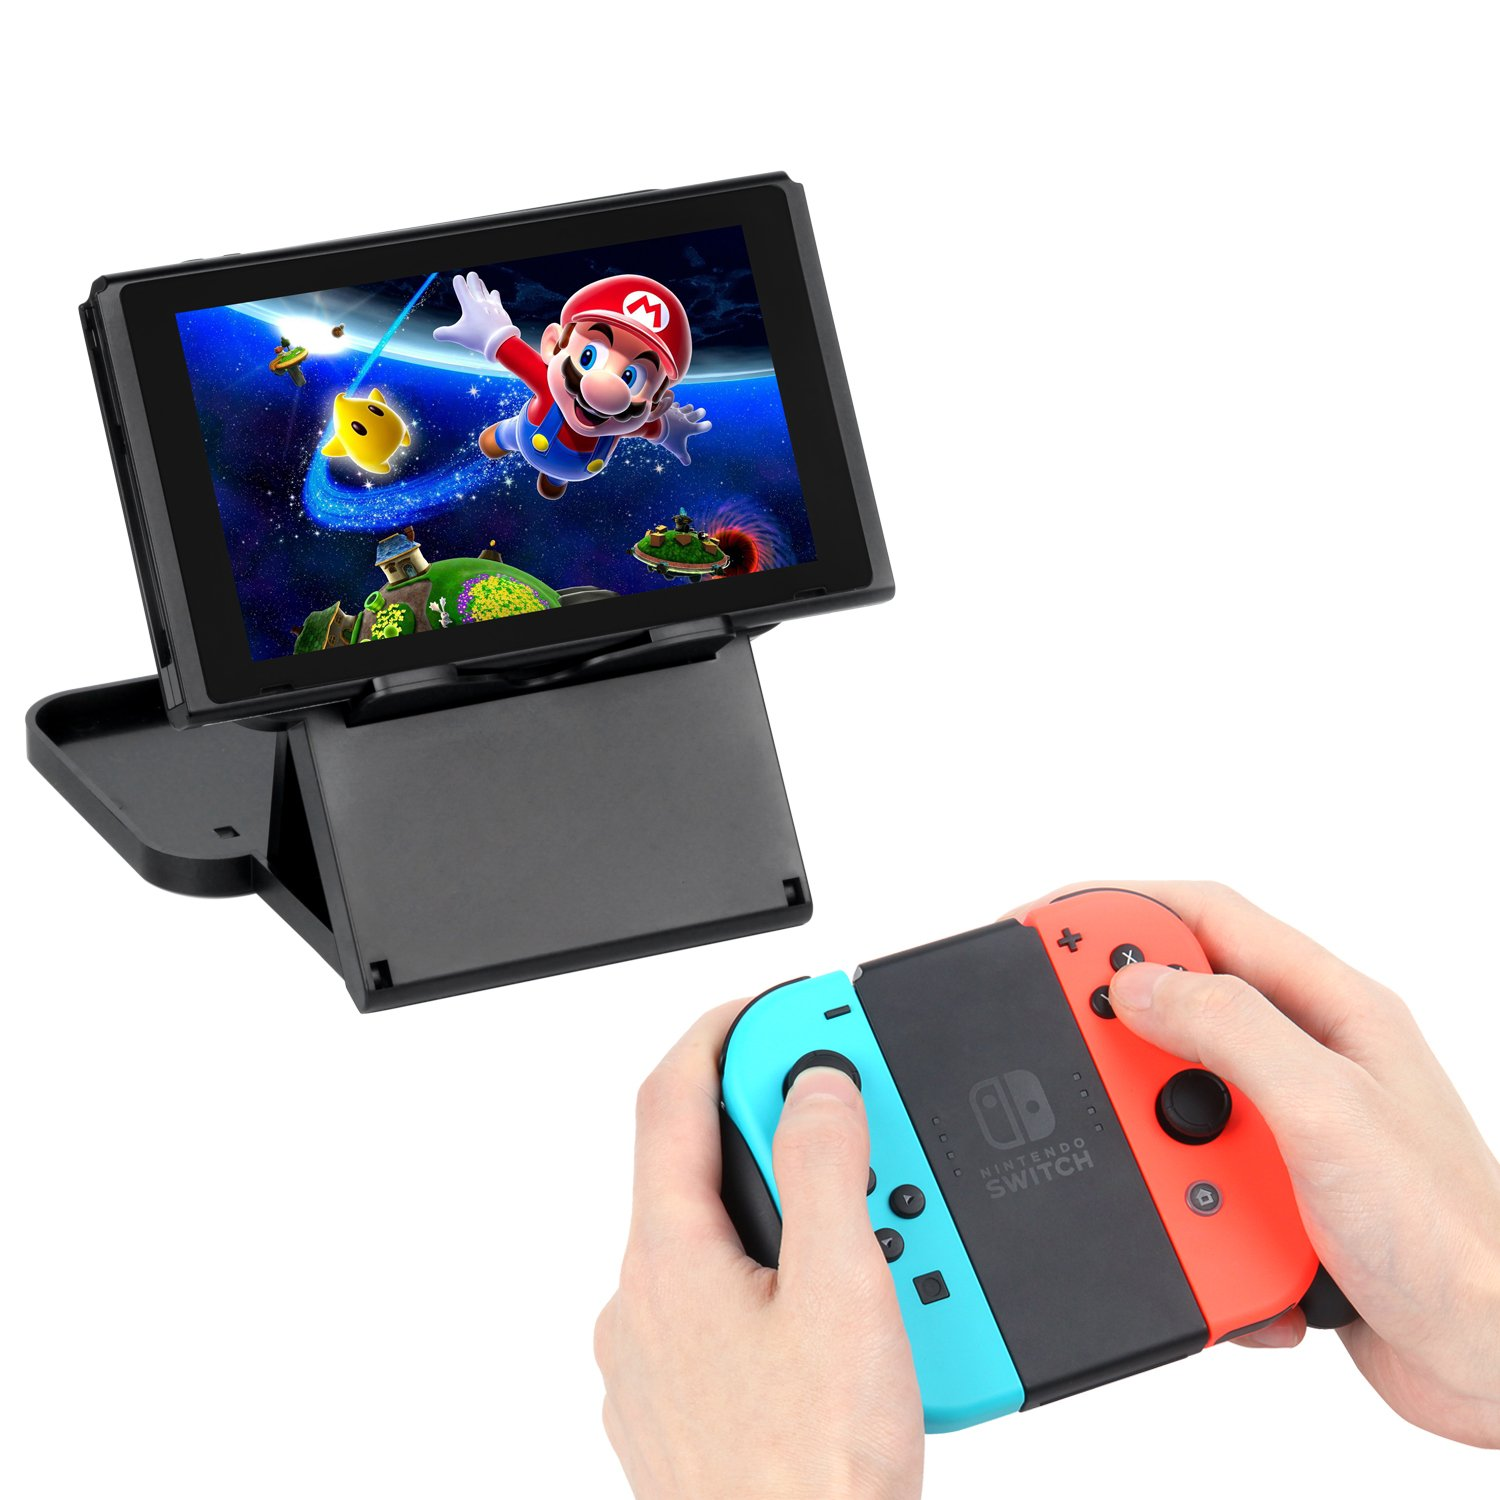 Mibote Play Stand Multi-Angle Playstand Portable Bracket for Nintendo Switch by MIBOTE